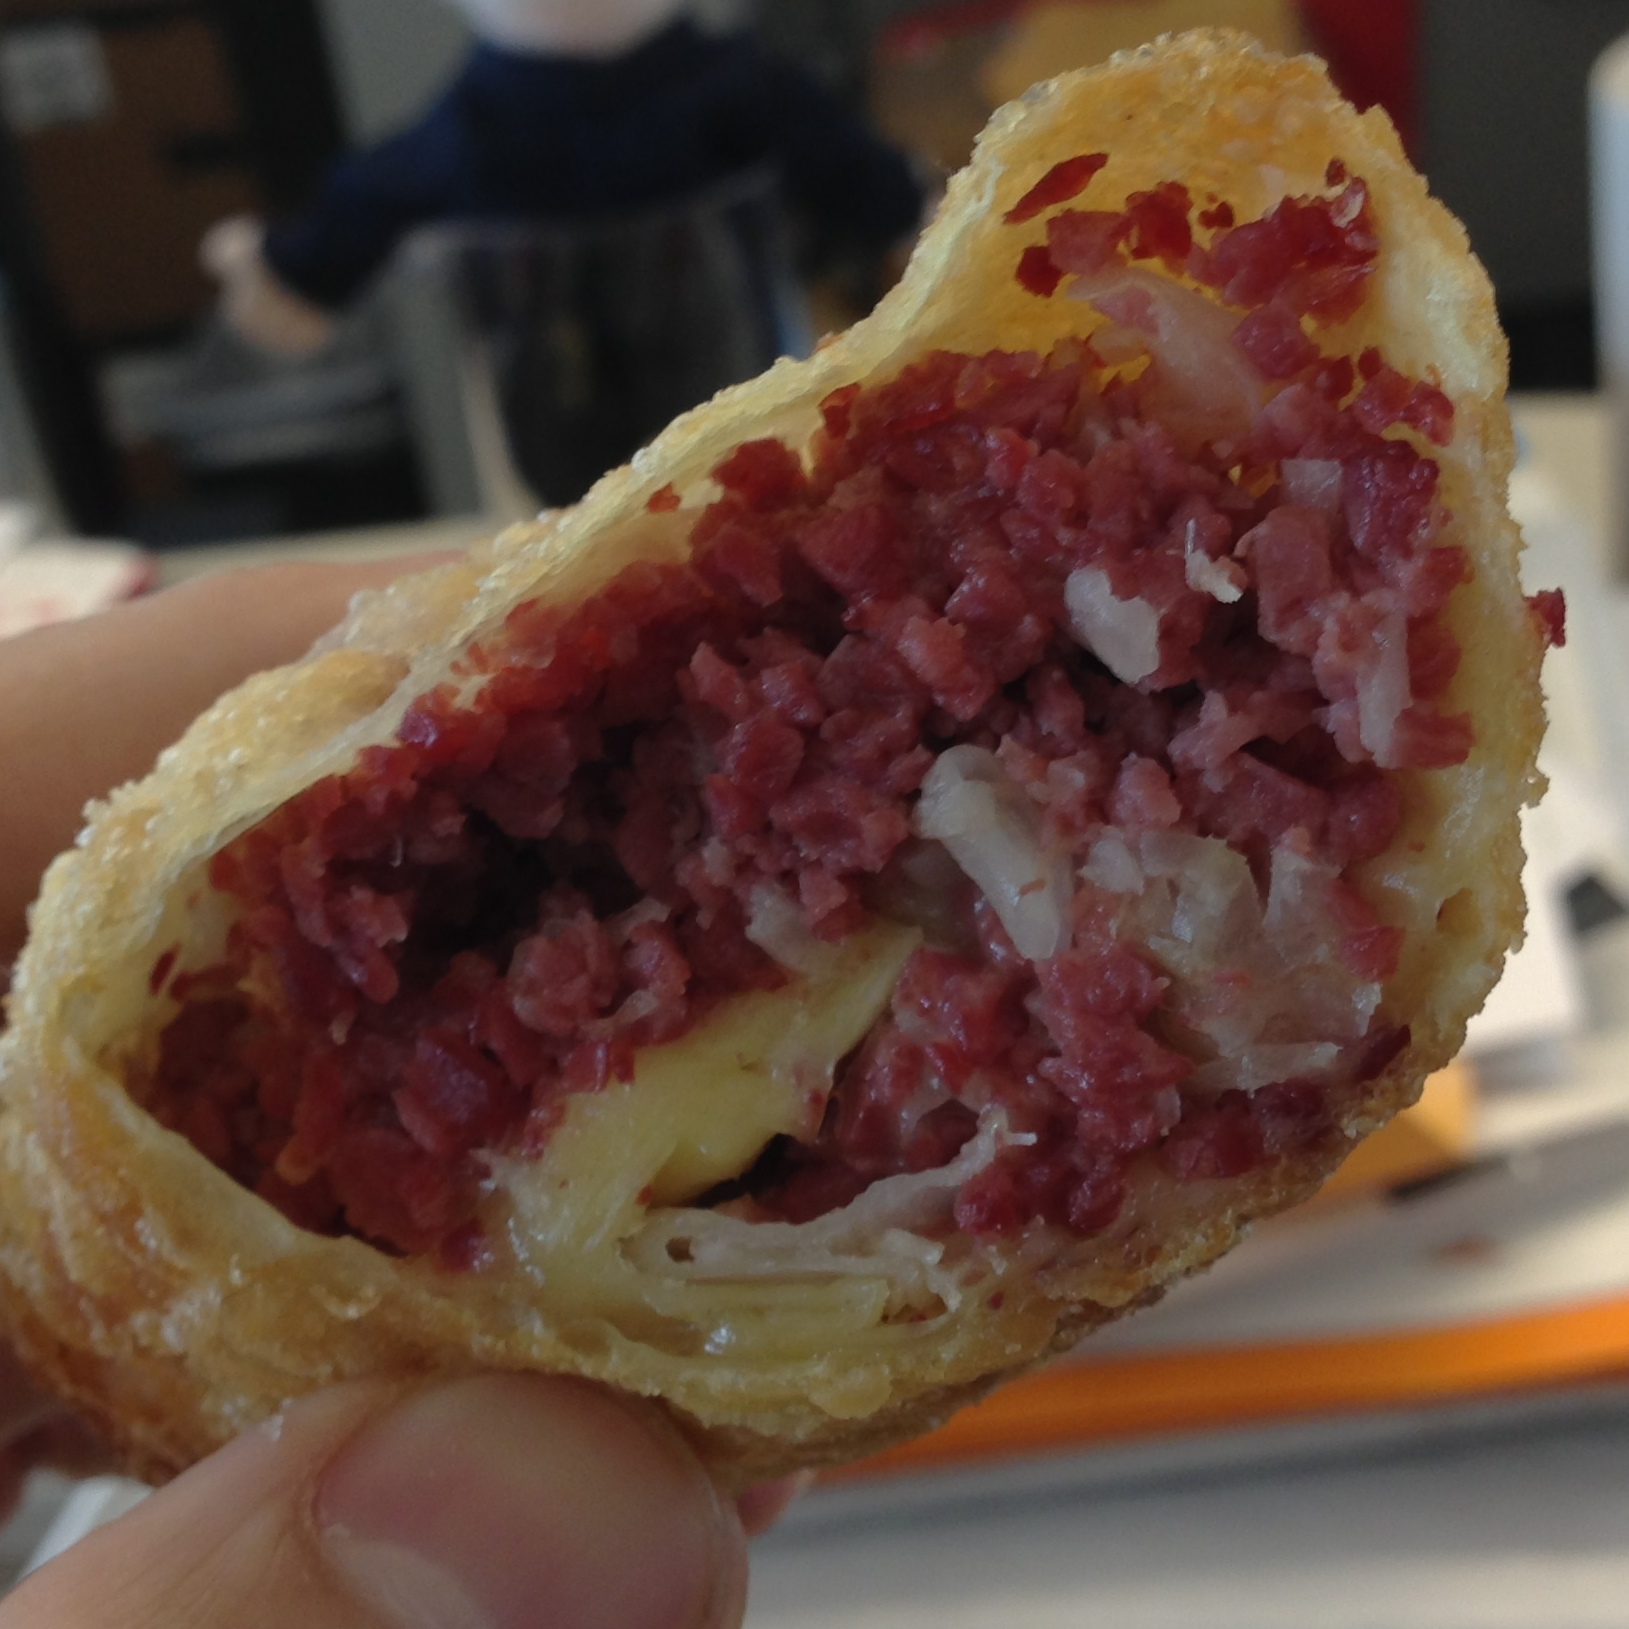 The Reuben Egg Roll